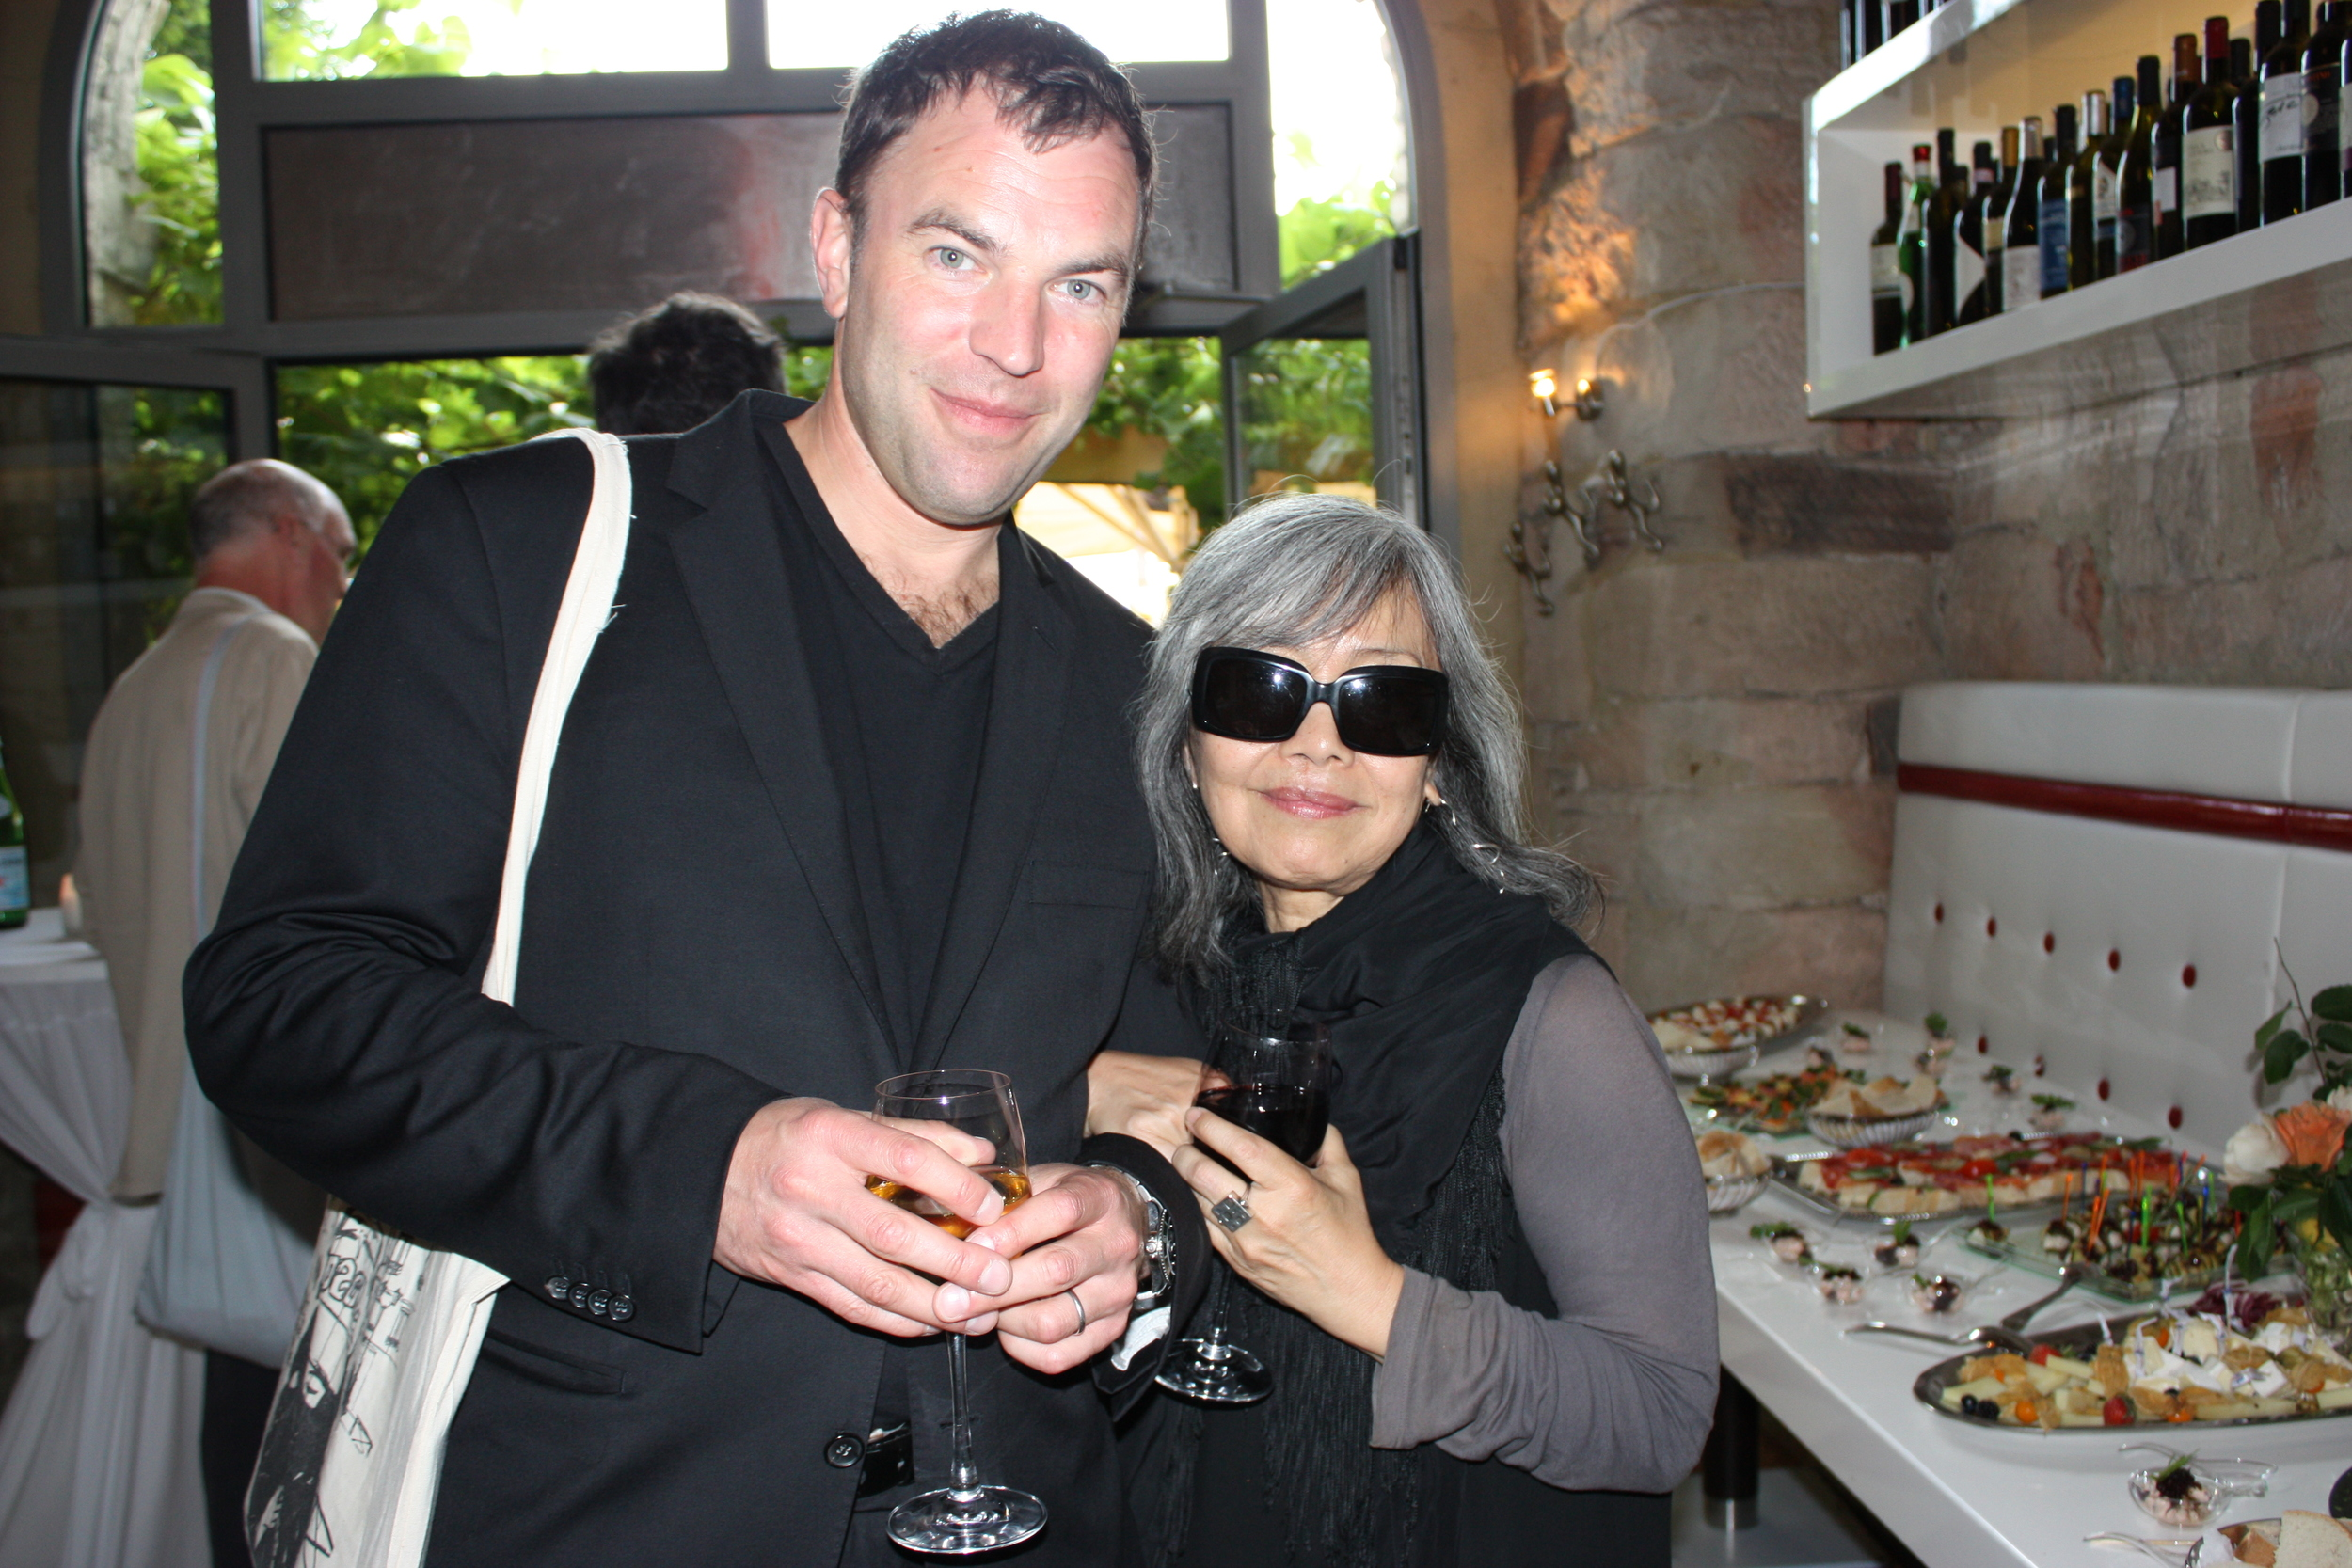 Mathias Ardnt, director of  Ardnt Gallery  in Berlin and Lilly Wei of  Art in America,  New York. Museum of Contemporary Art Sydney cocktail party. Il Convento. Friday June 8.  © Lucy Rees